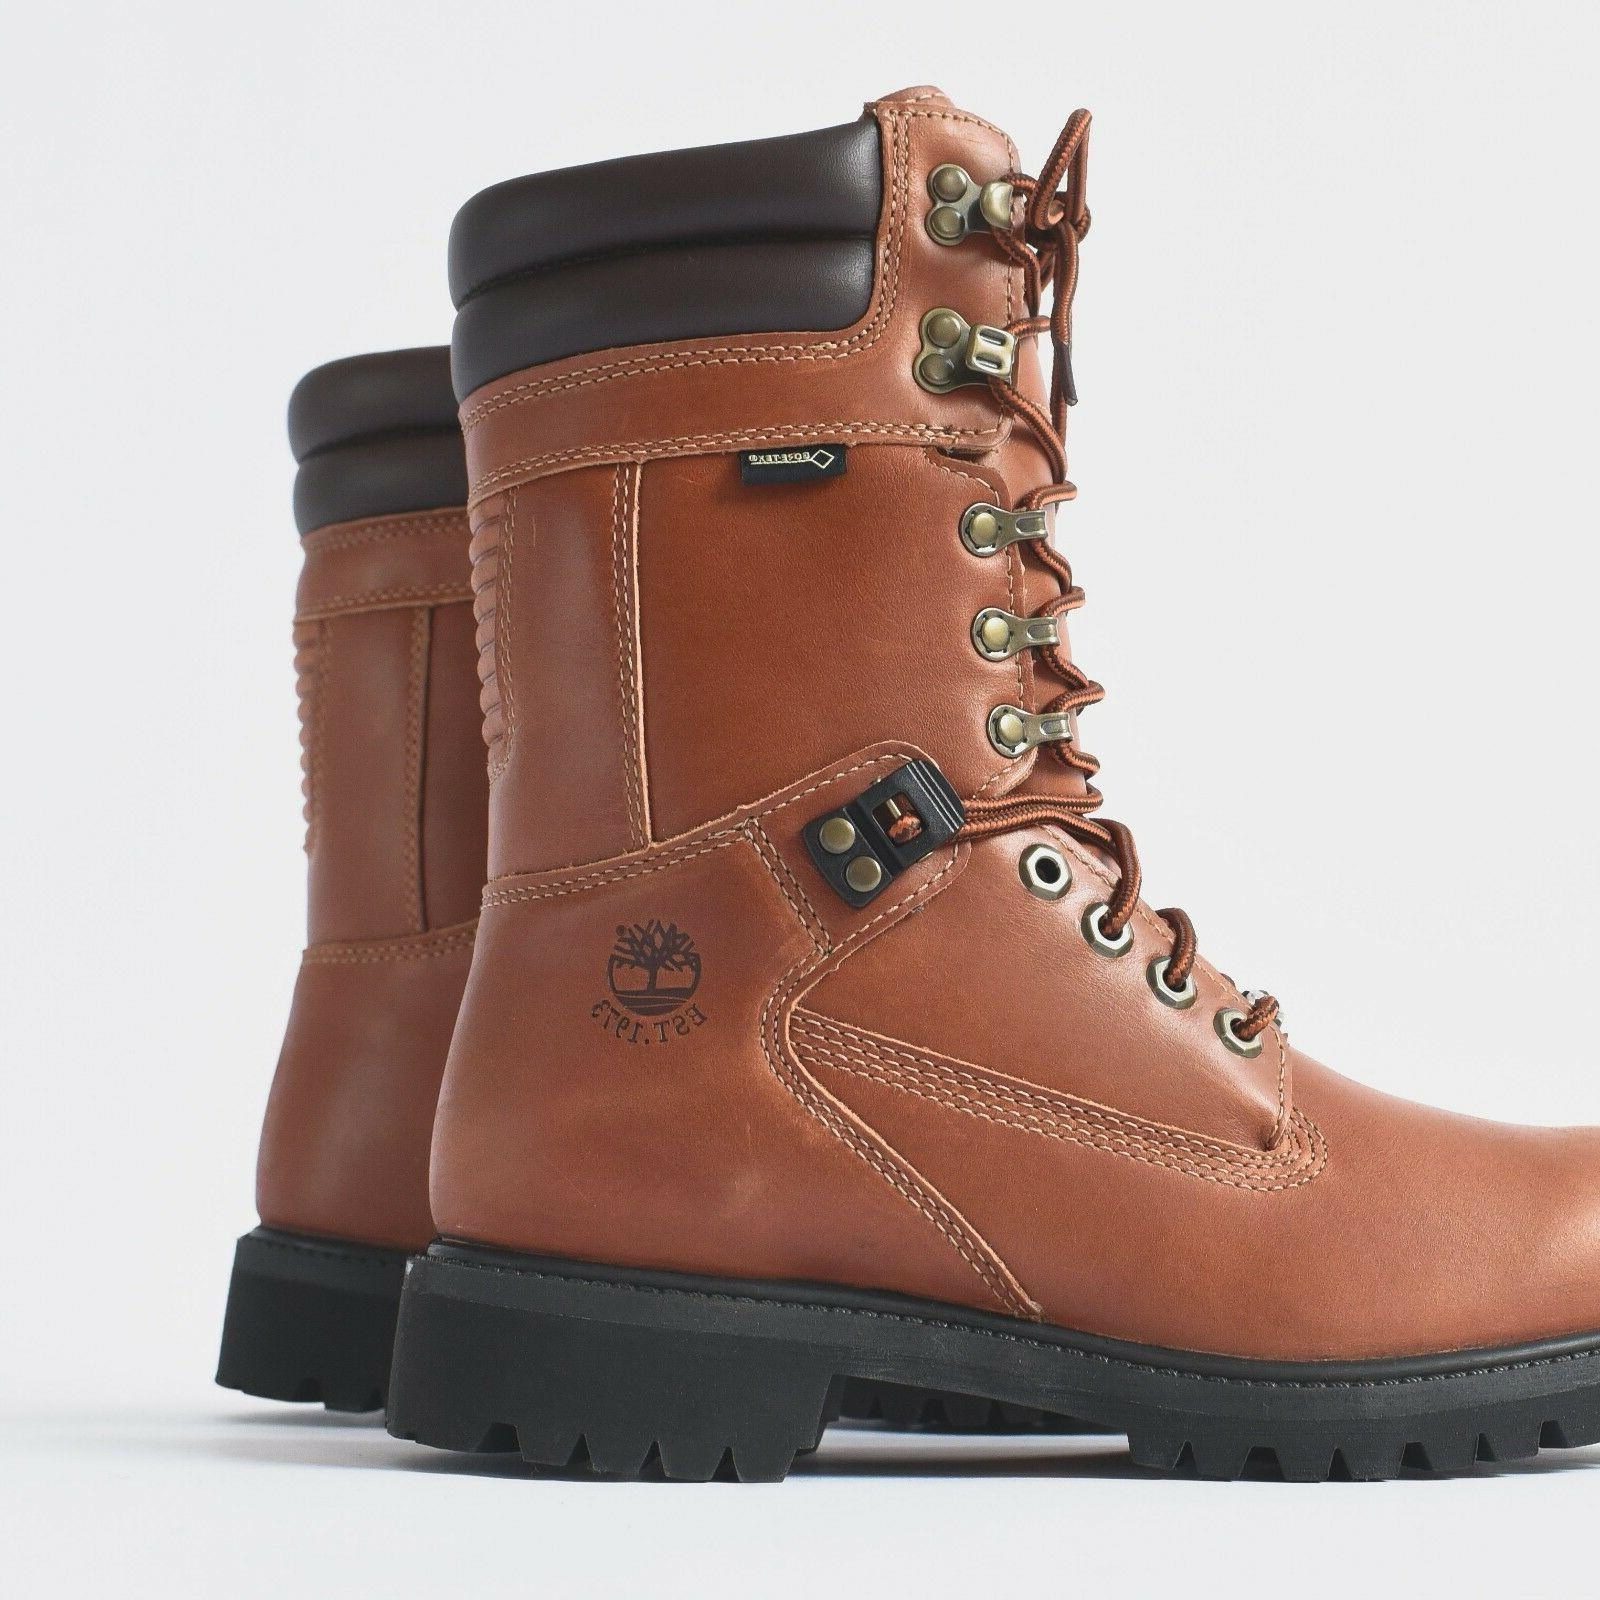 {A1Z56} Timberland Special Release Winter Extreme Super Boots